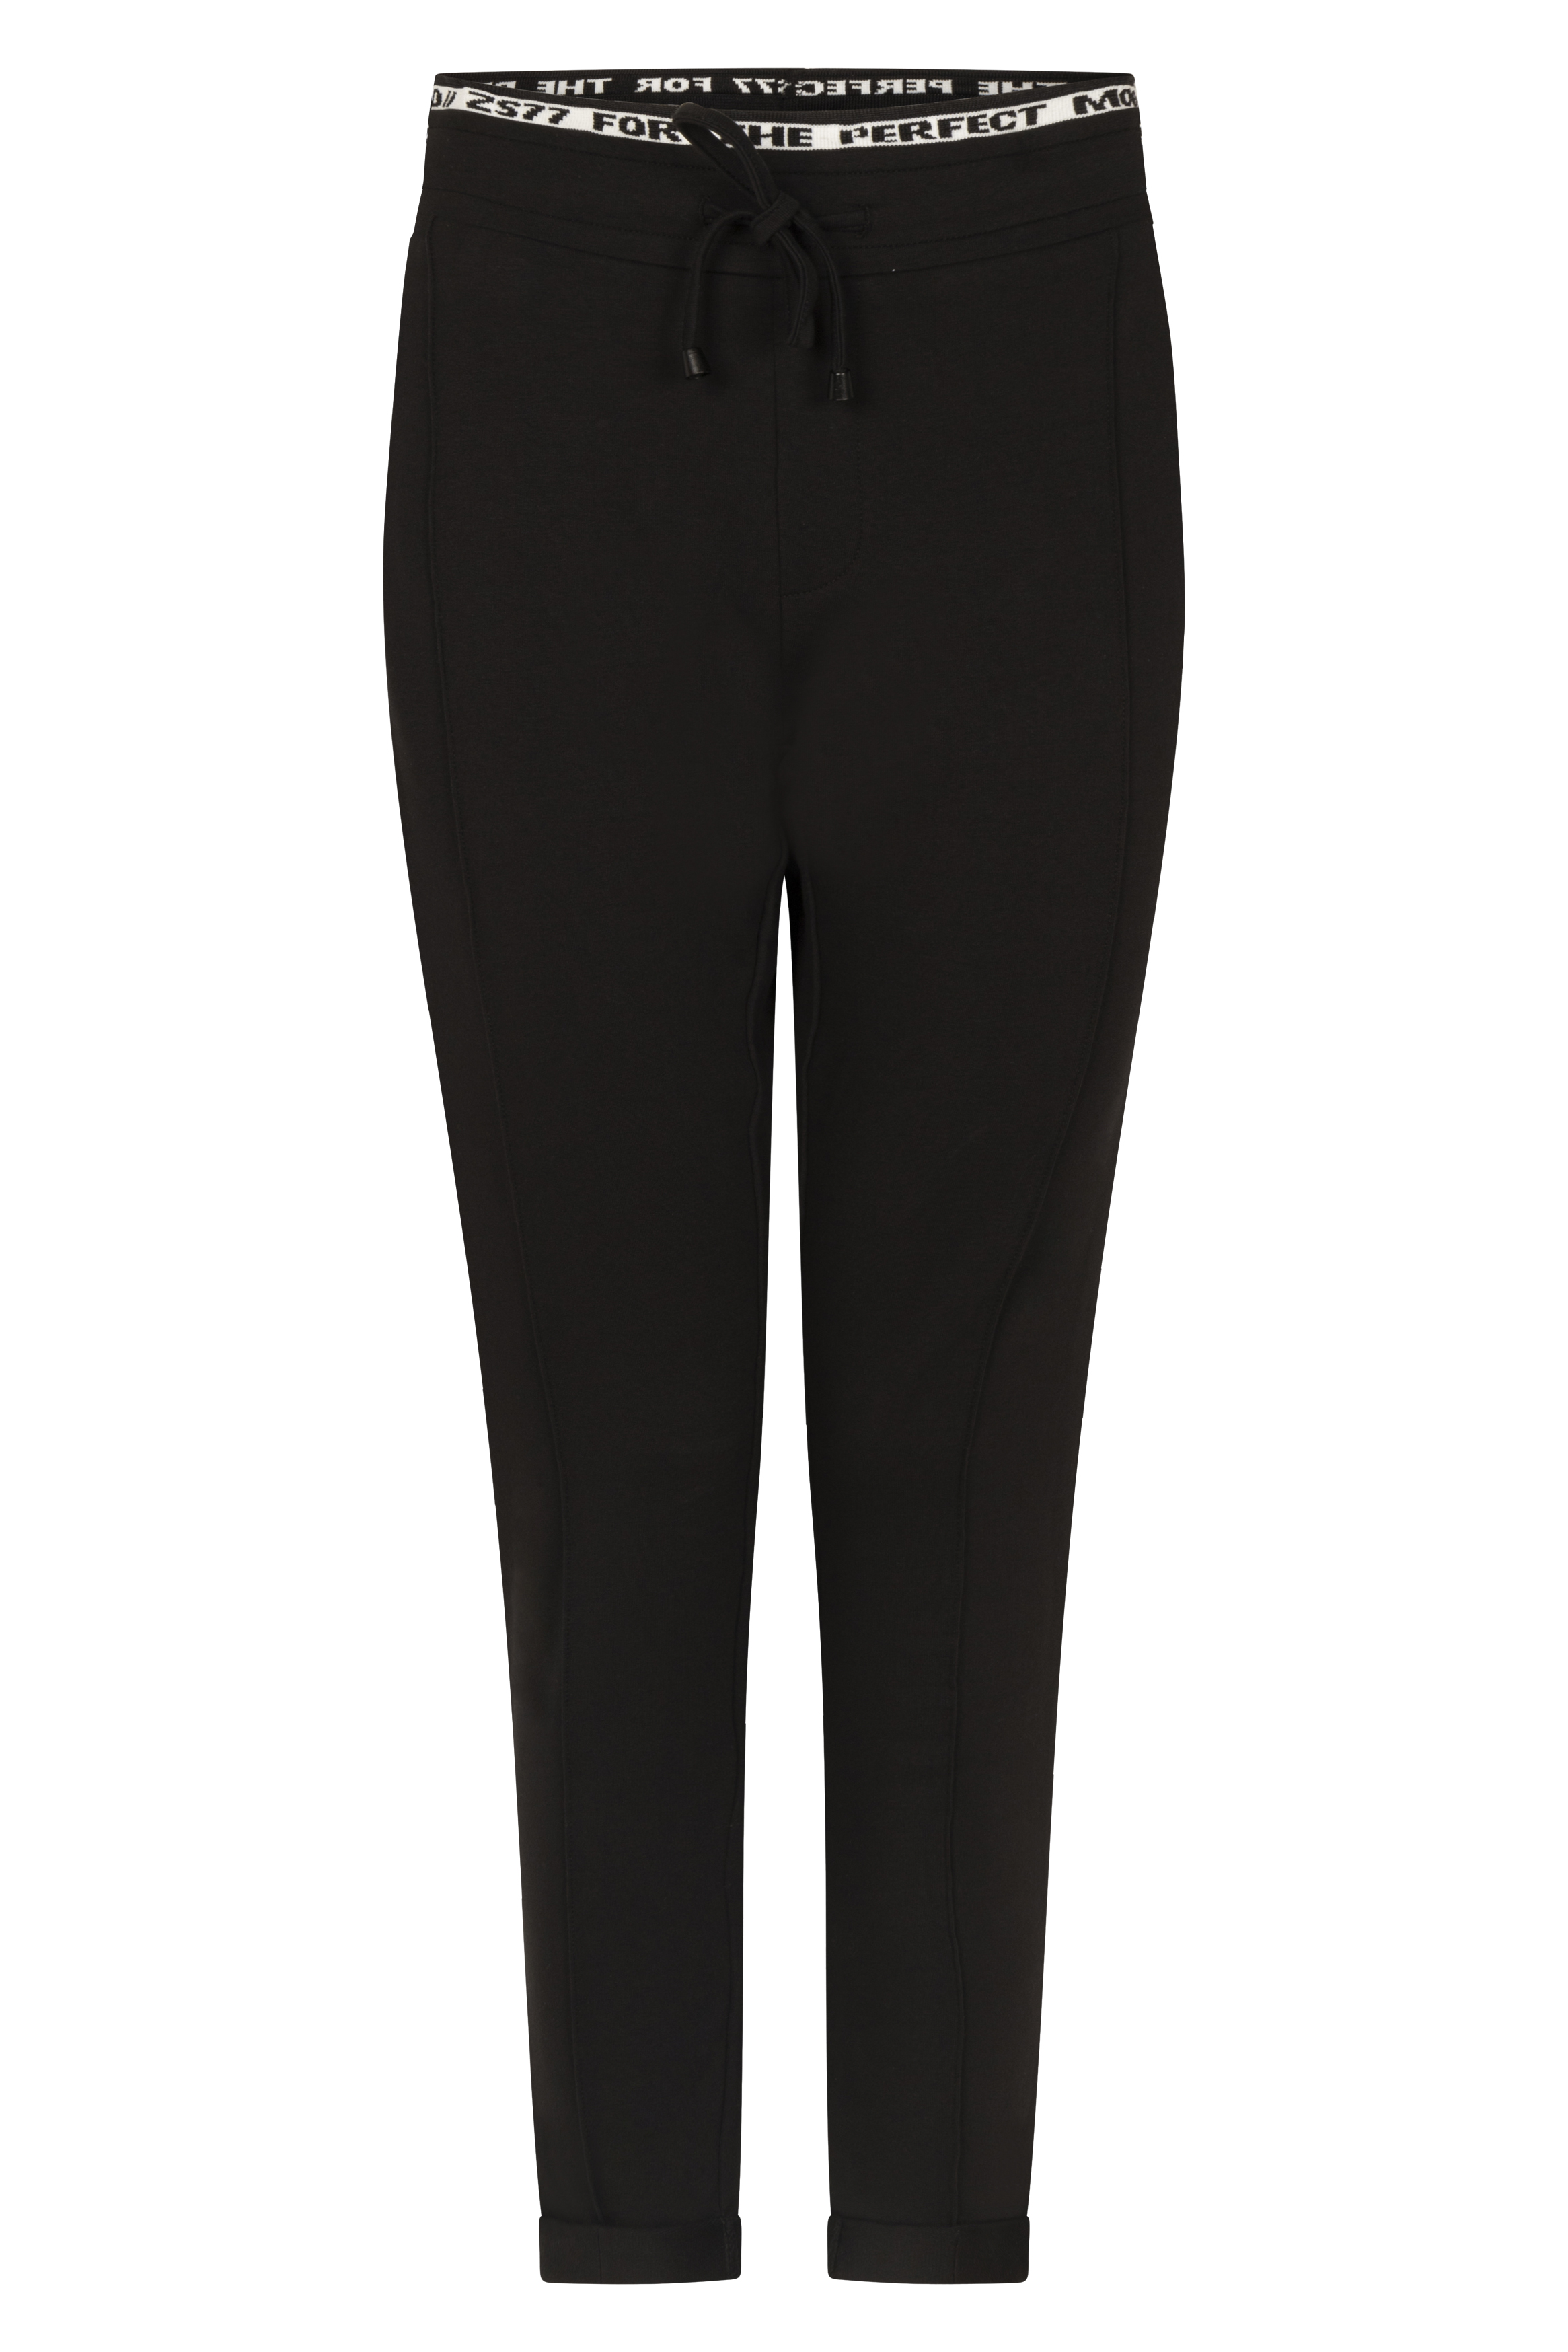 Sporty trouser with tricoband black